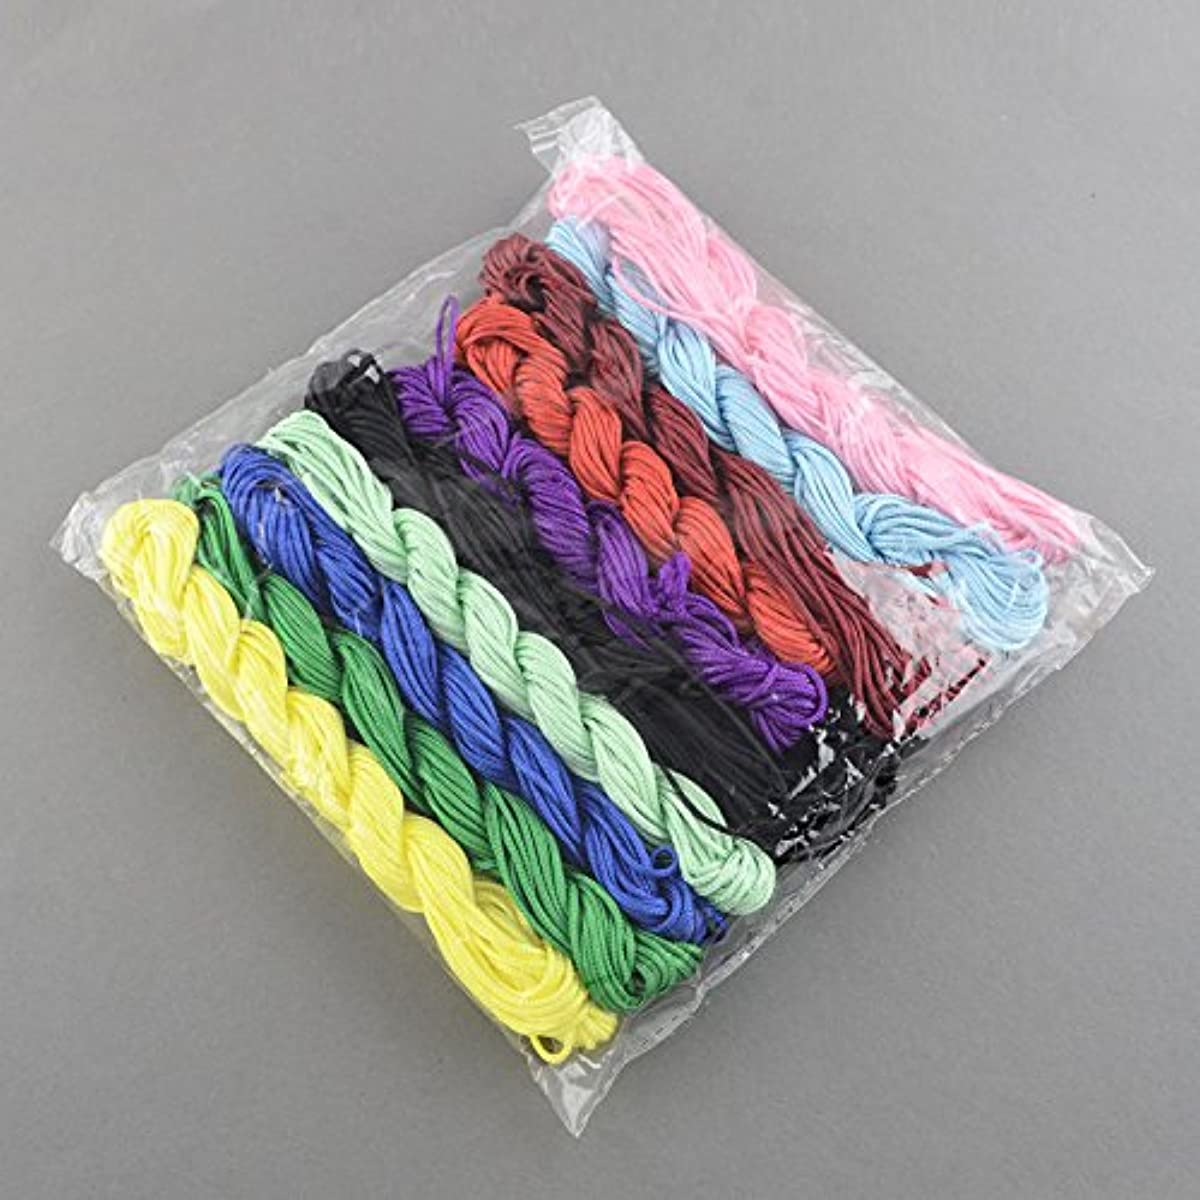 PEPPERLONELY Brand 10 Bundles x 27 Yards 1mm Nylon Beading String Knotting Cord Chinese Knotting Cords